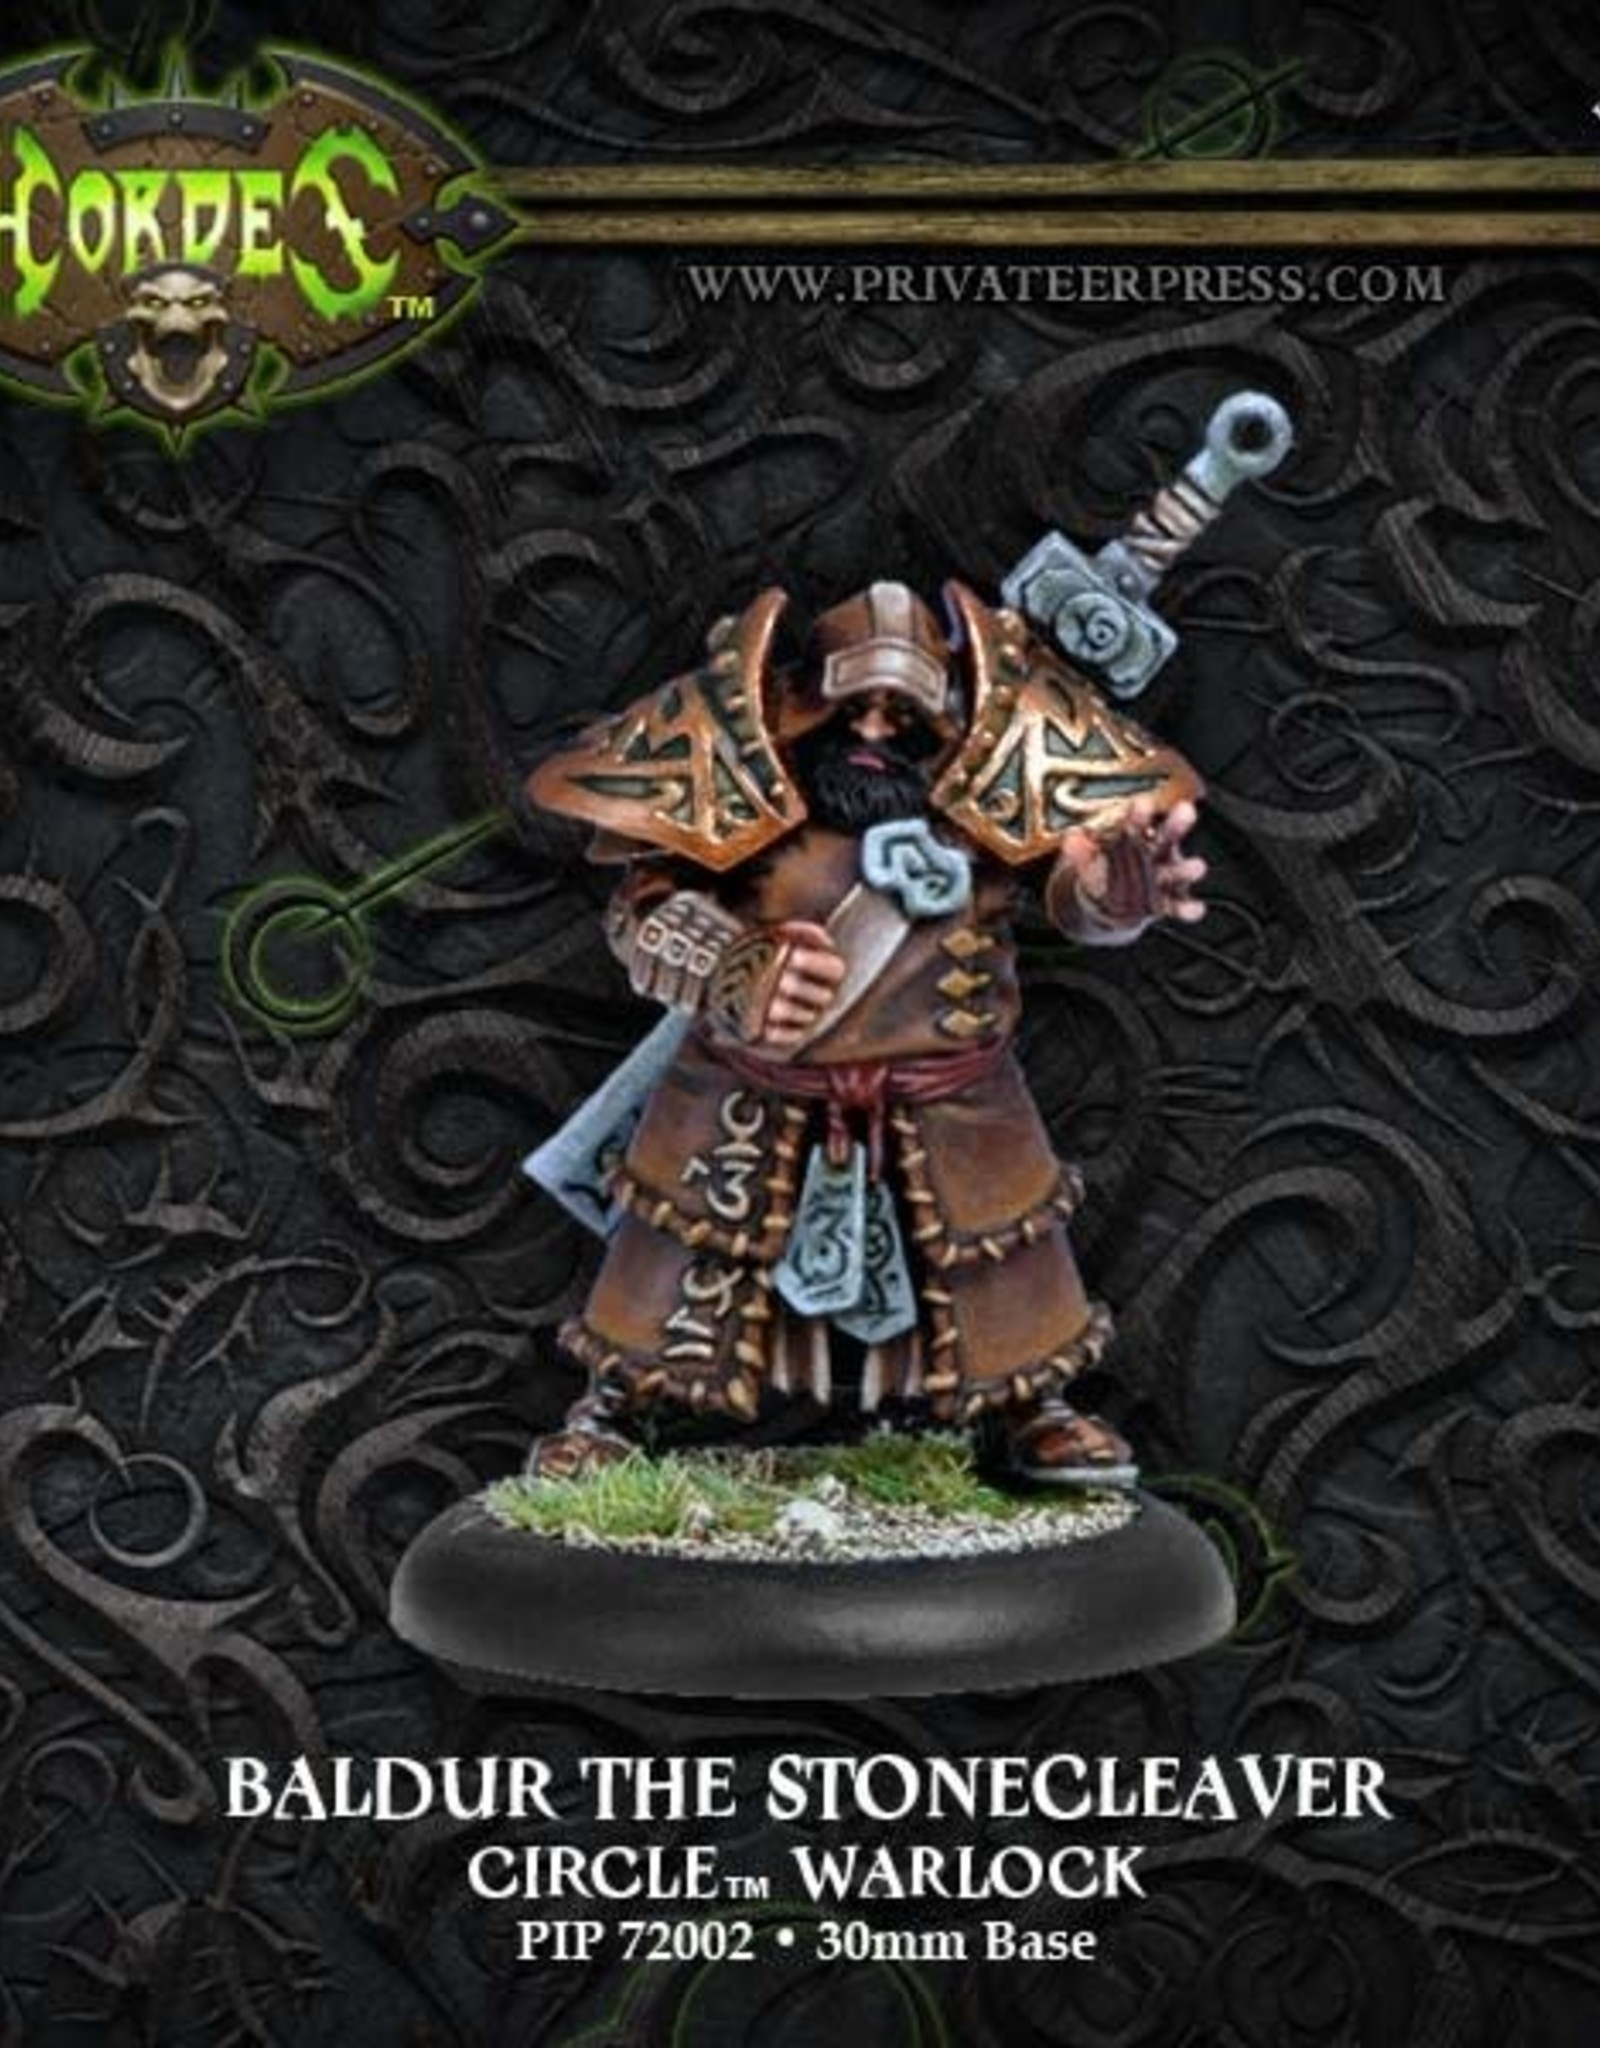 Hordes Circle - Baldur the Stonecleaver